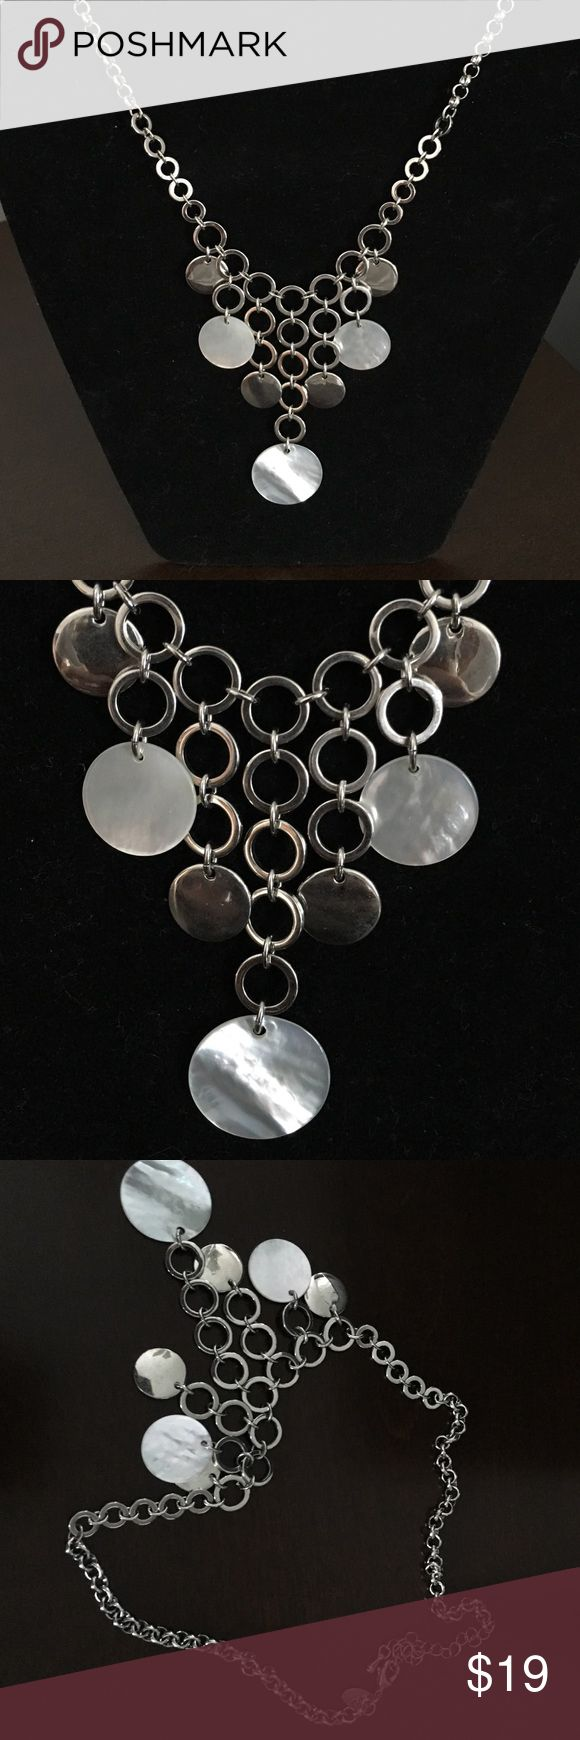 "Lia Sophia Necklace Lia Sophia Necklace. Silver with silver circles and a few white opaque circles. Chain: 16"" is the smallest it can be; 18.5"" is the longest. Lia Sophia Jewelry Necklaces"